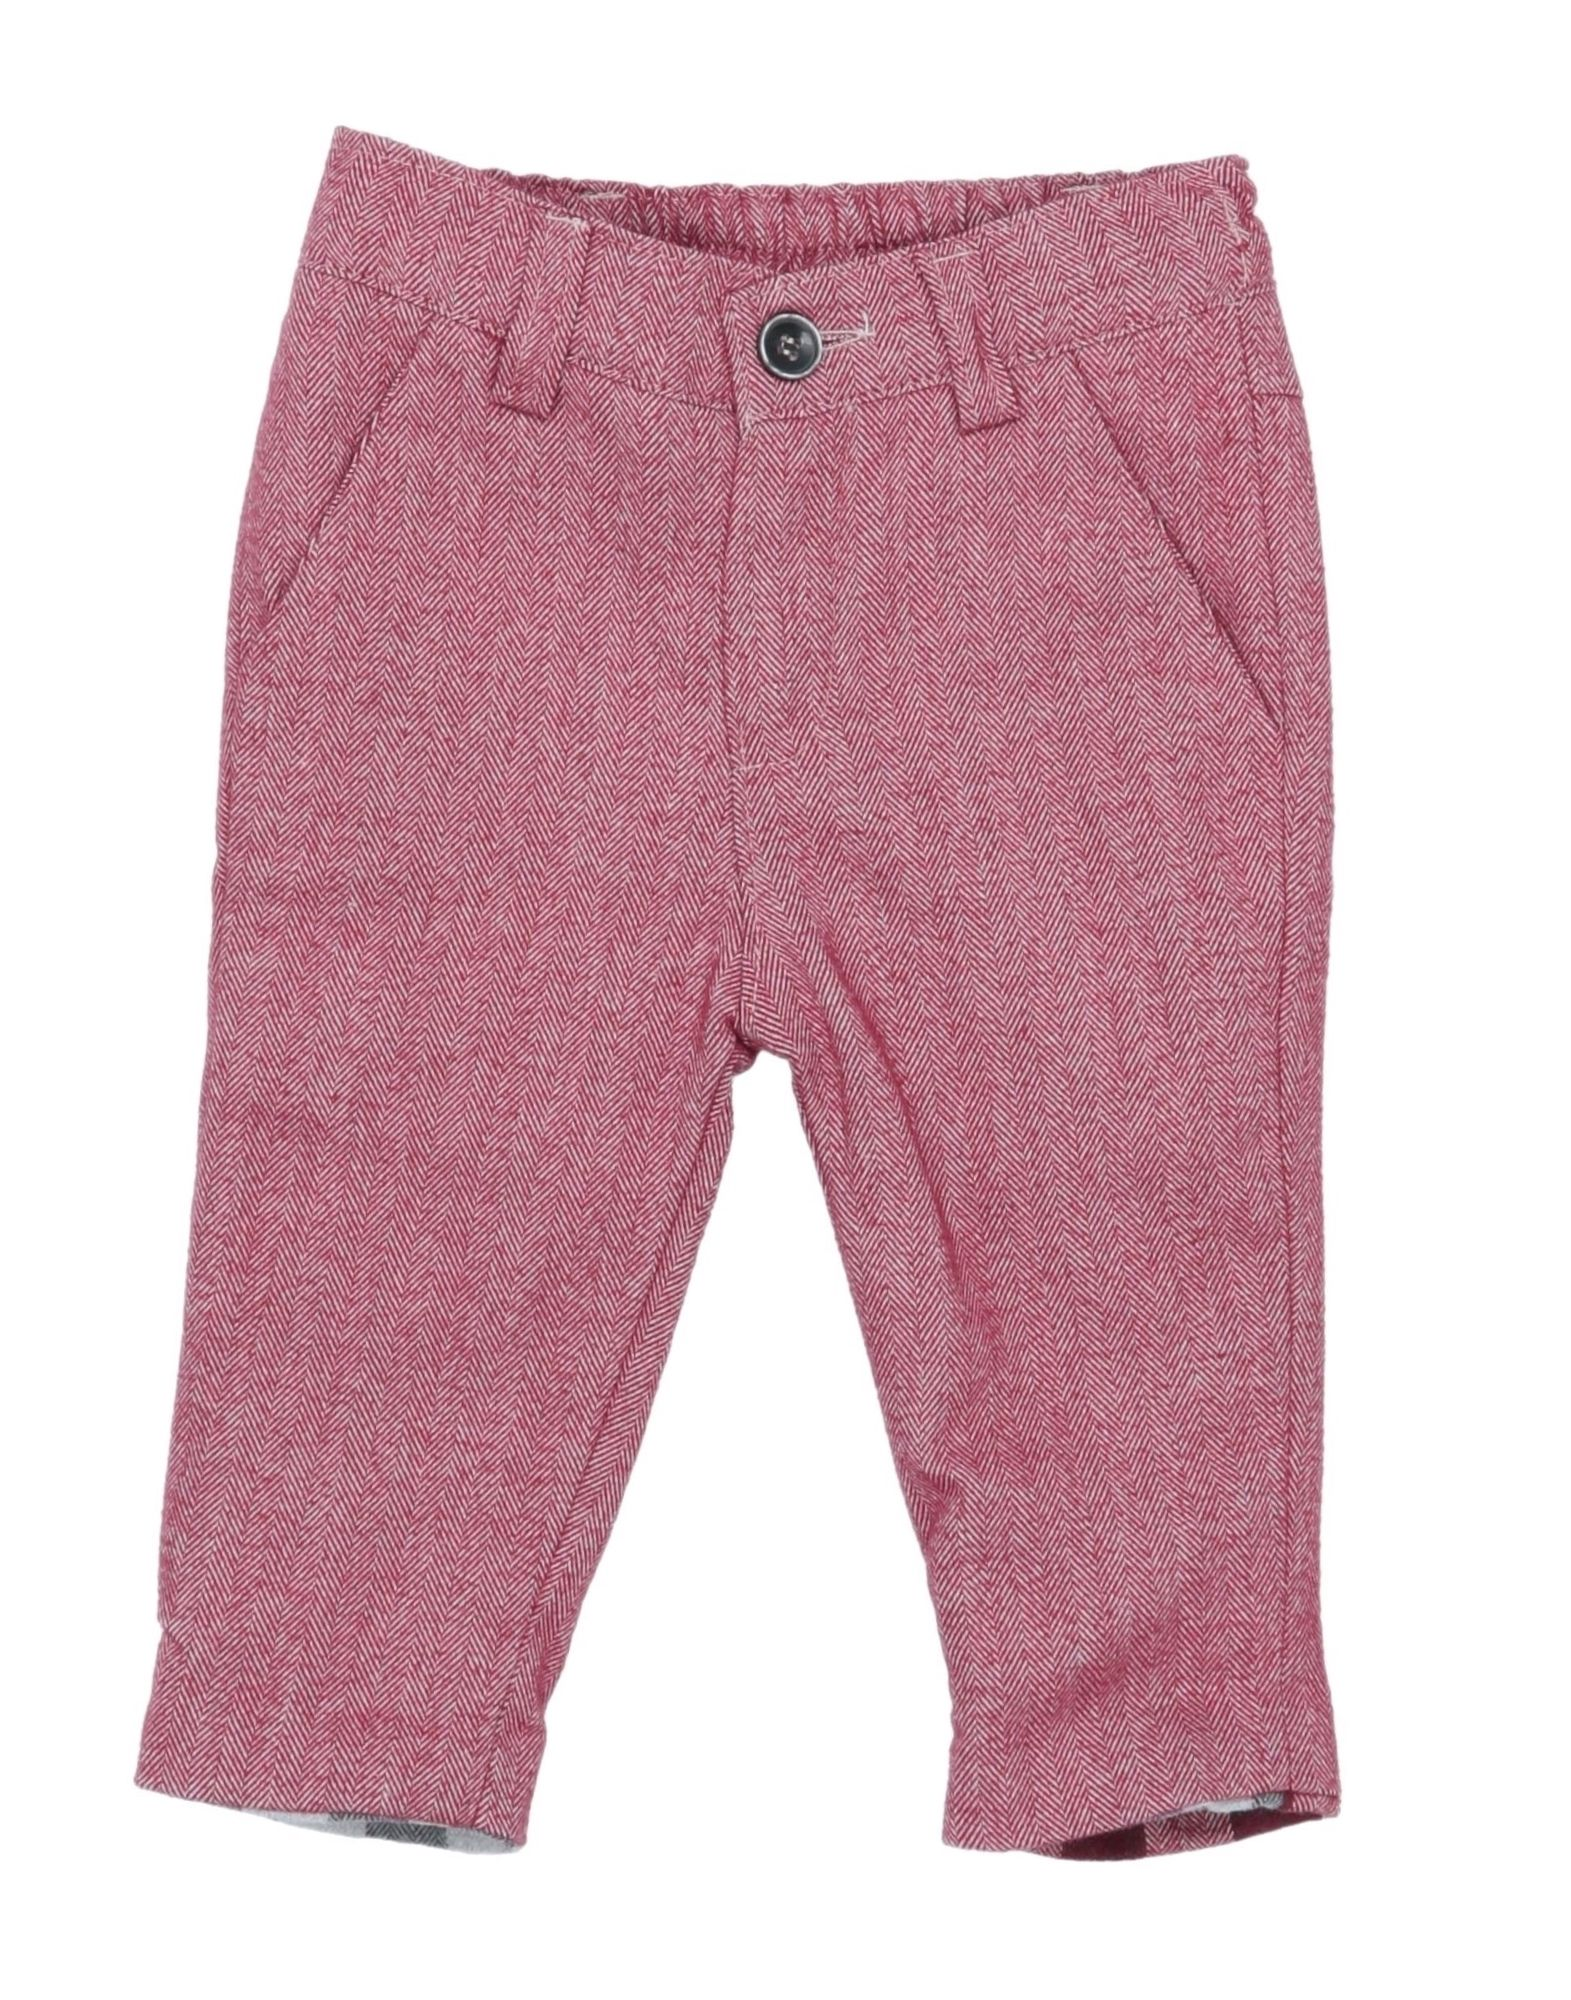 Manuell & Frank Kids' Casual Pants In Pink